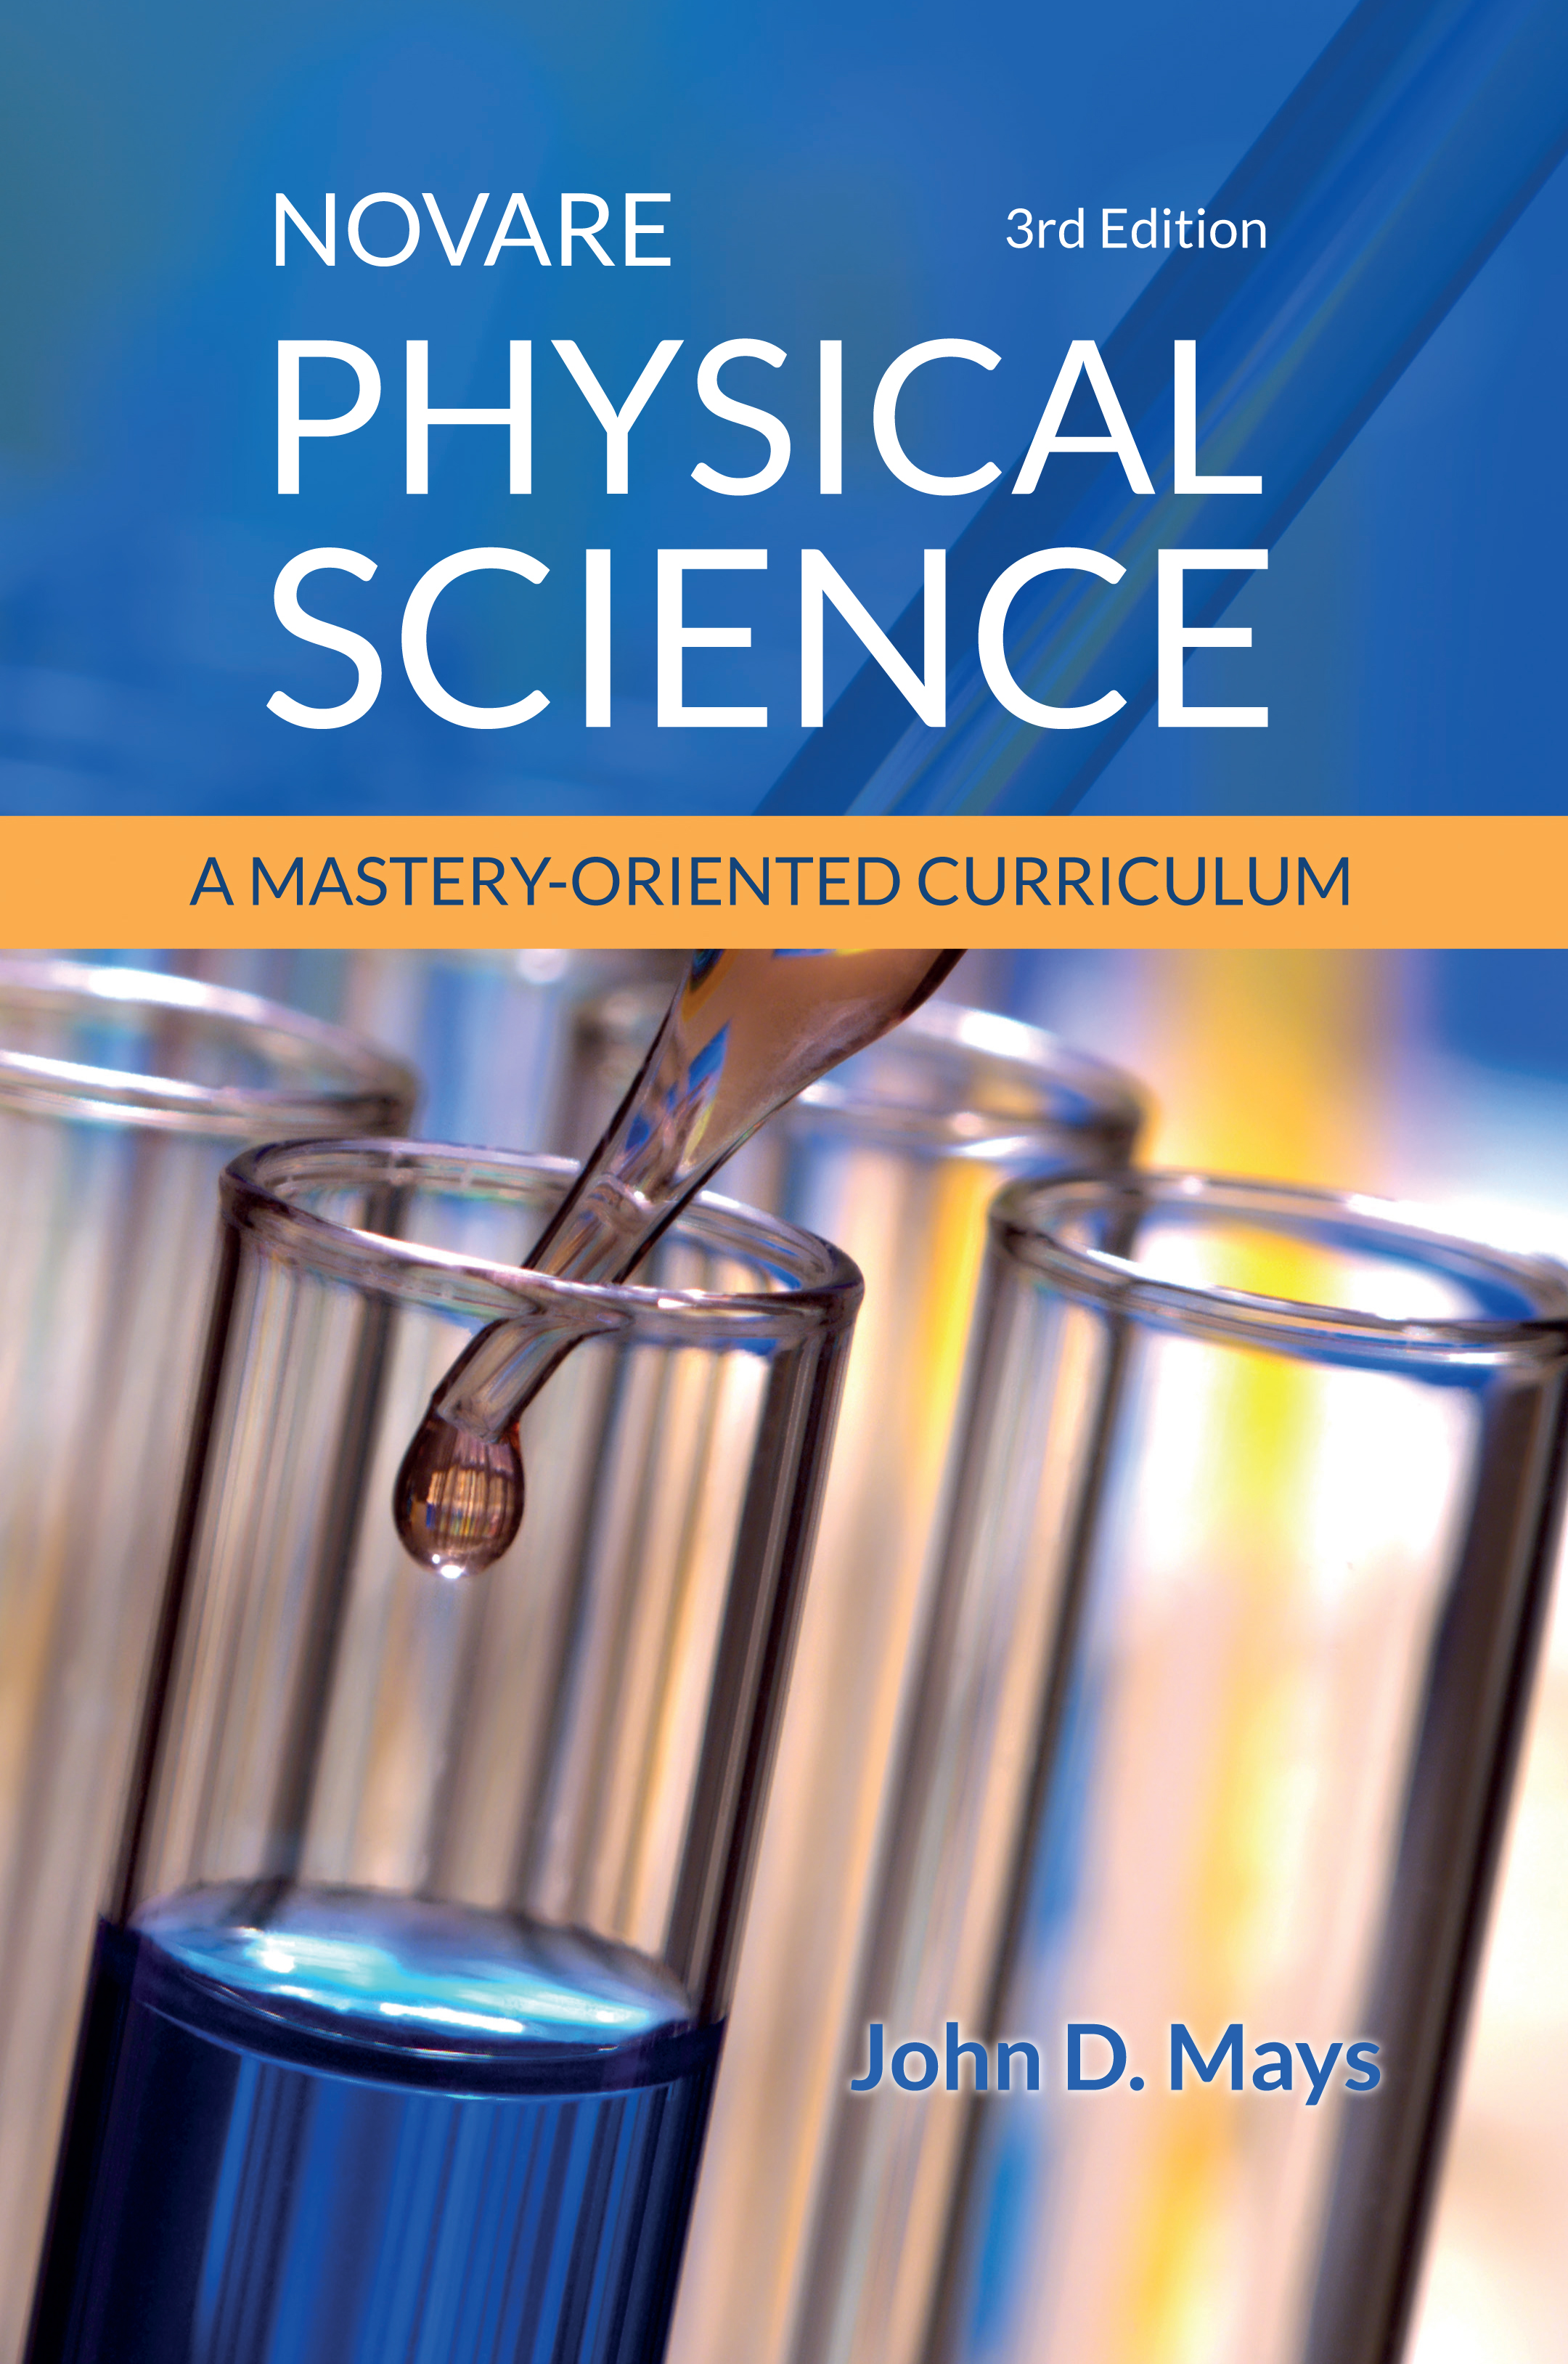 Novare Physical Science 3rd Edition (5-year license)